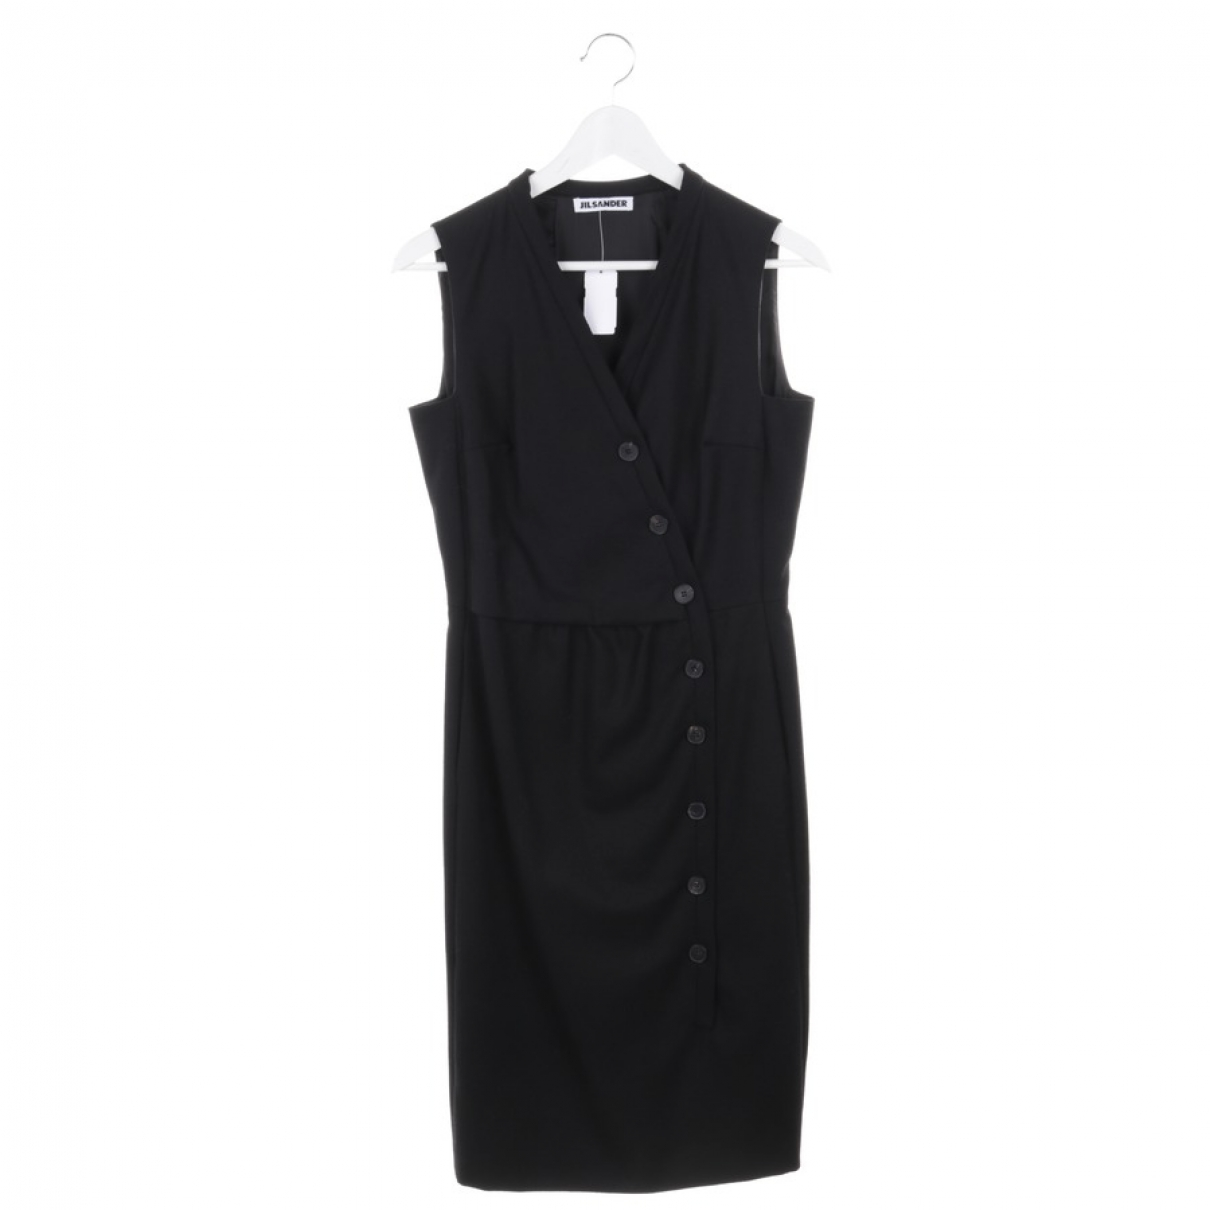 Jil Sander \N Black Wool dress for Women 36 FR